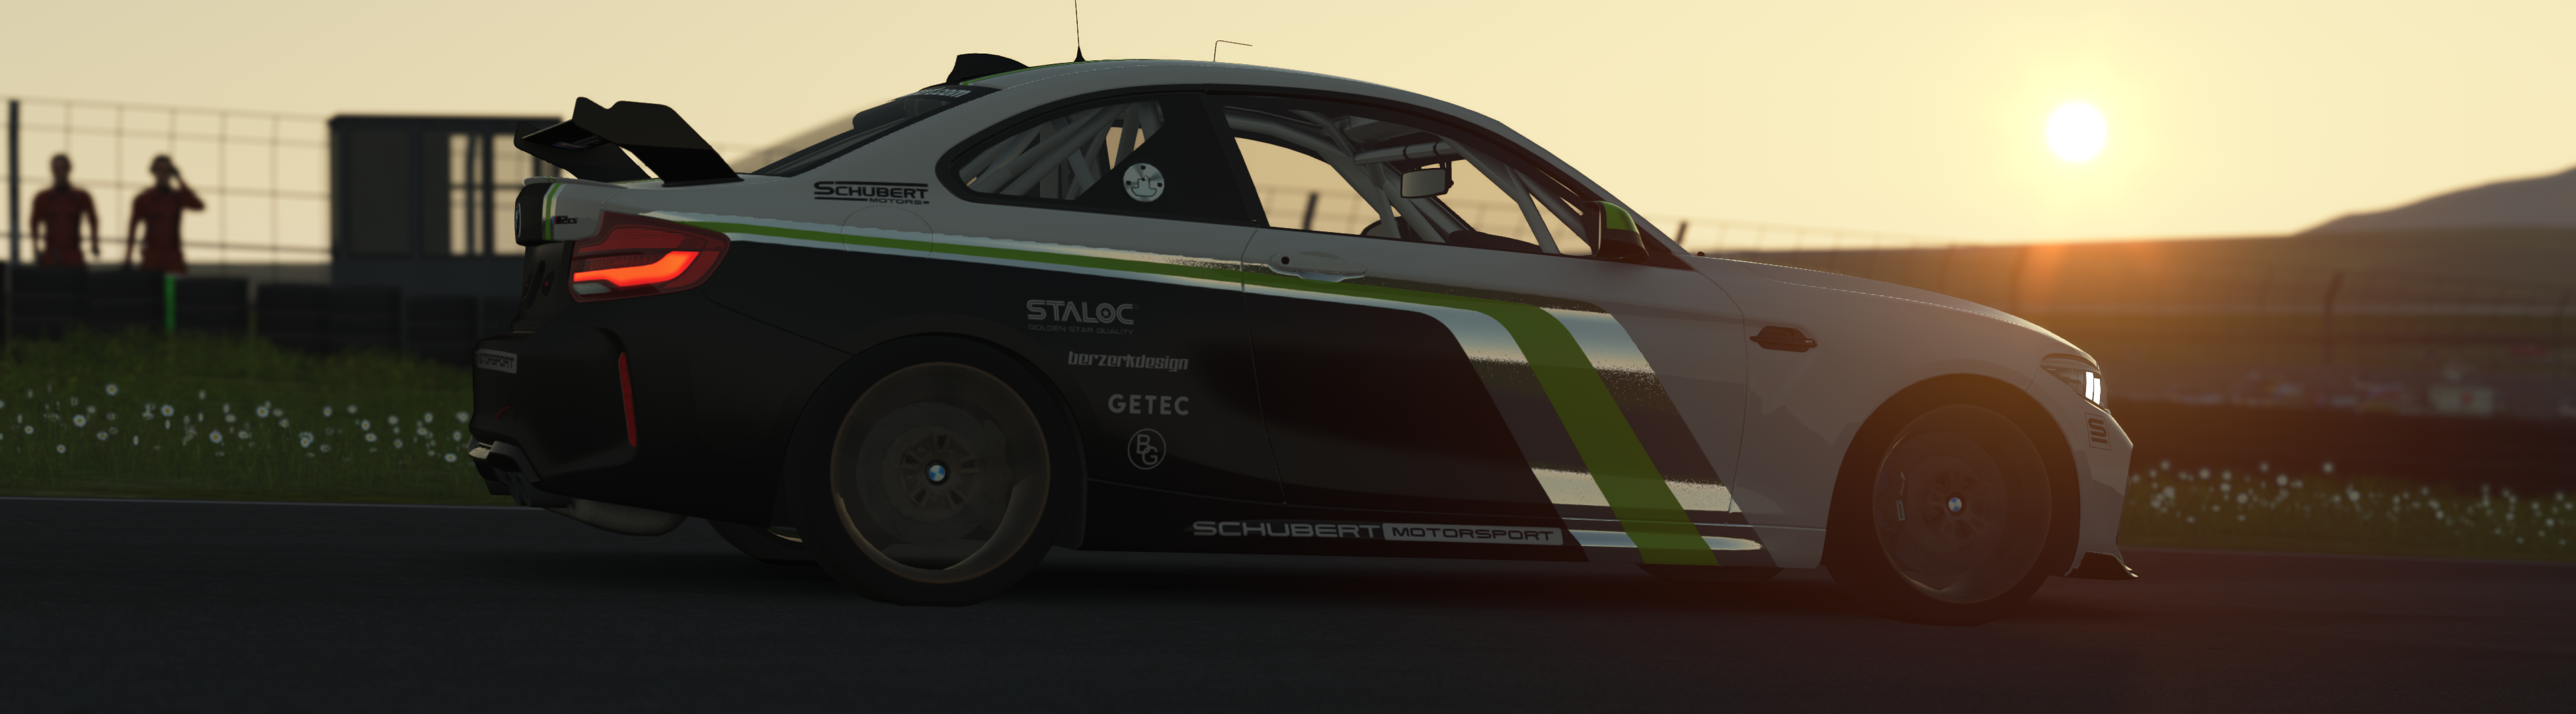 rFactor2 2020-06-27 01-00-55-39.png